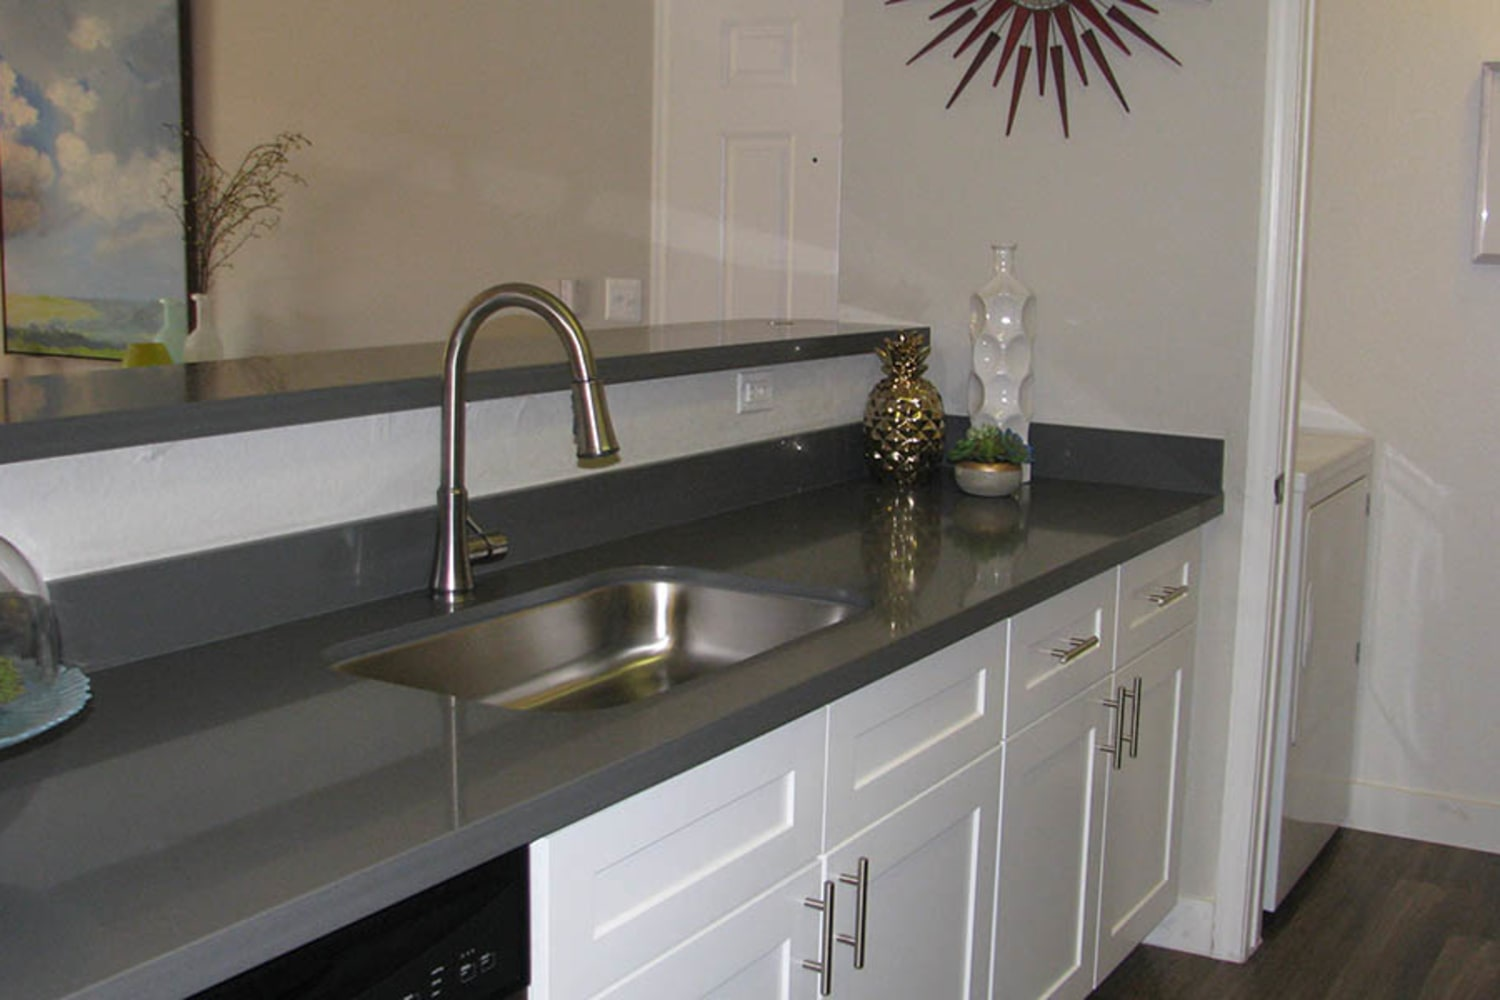 Ocotillo Bay Apartments in Chandler, Arizona, offer bathrooms with ample counter and storage space